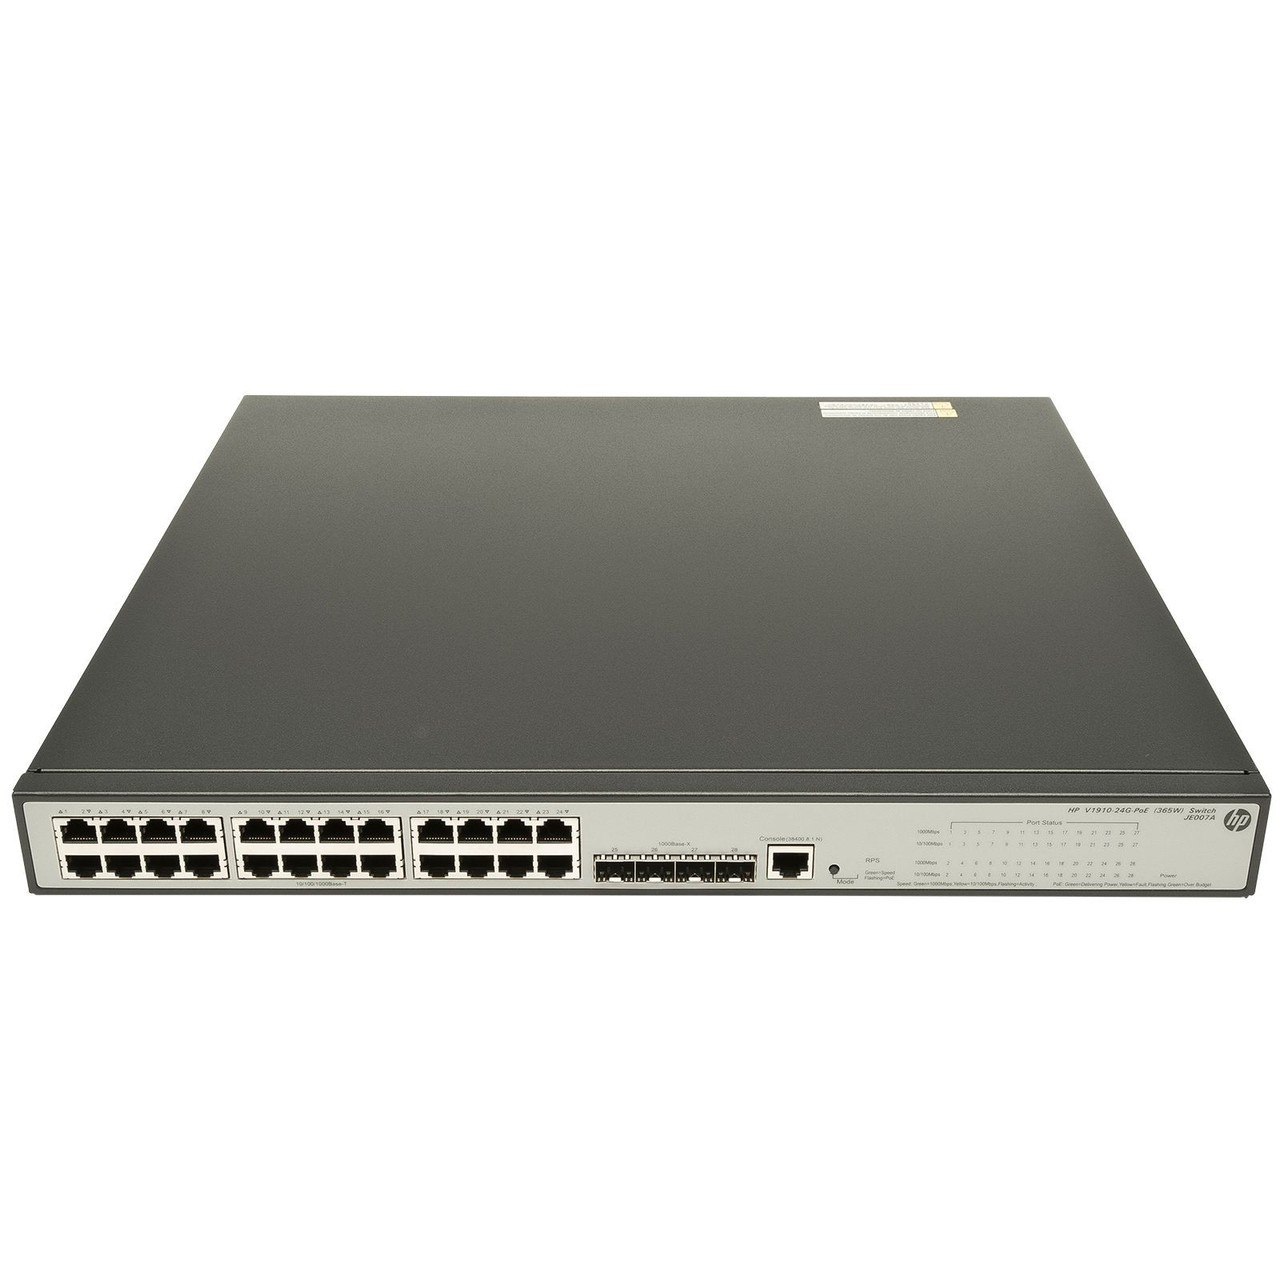 HP JE007A 1910 Series 1910-24G-PoE (365W) 24-Port Gigabit 4-Port SFP